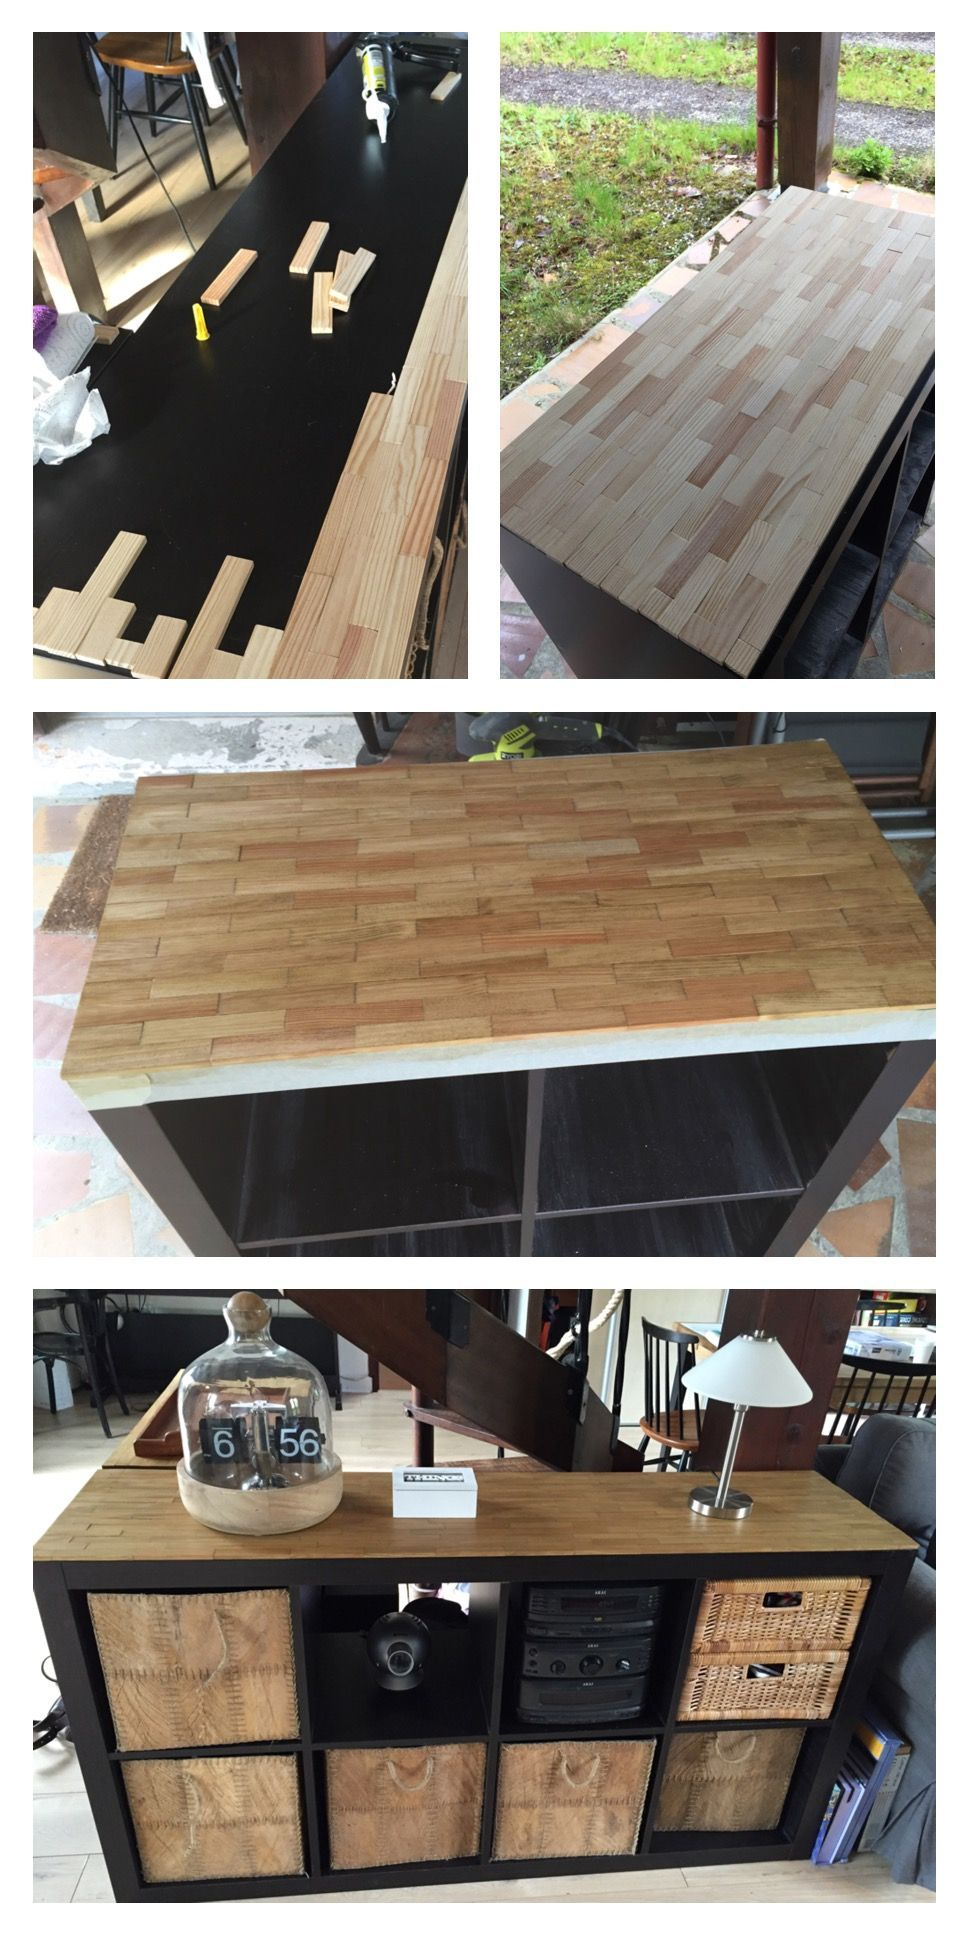 customisation de meuble expedit ikea avec des kapla r cup r s dans un vide grenier home made. Black Bedroom Furniture Sets. Home Design Ideas